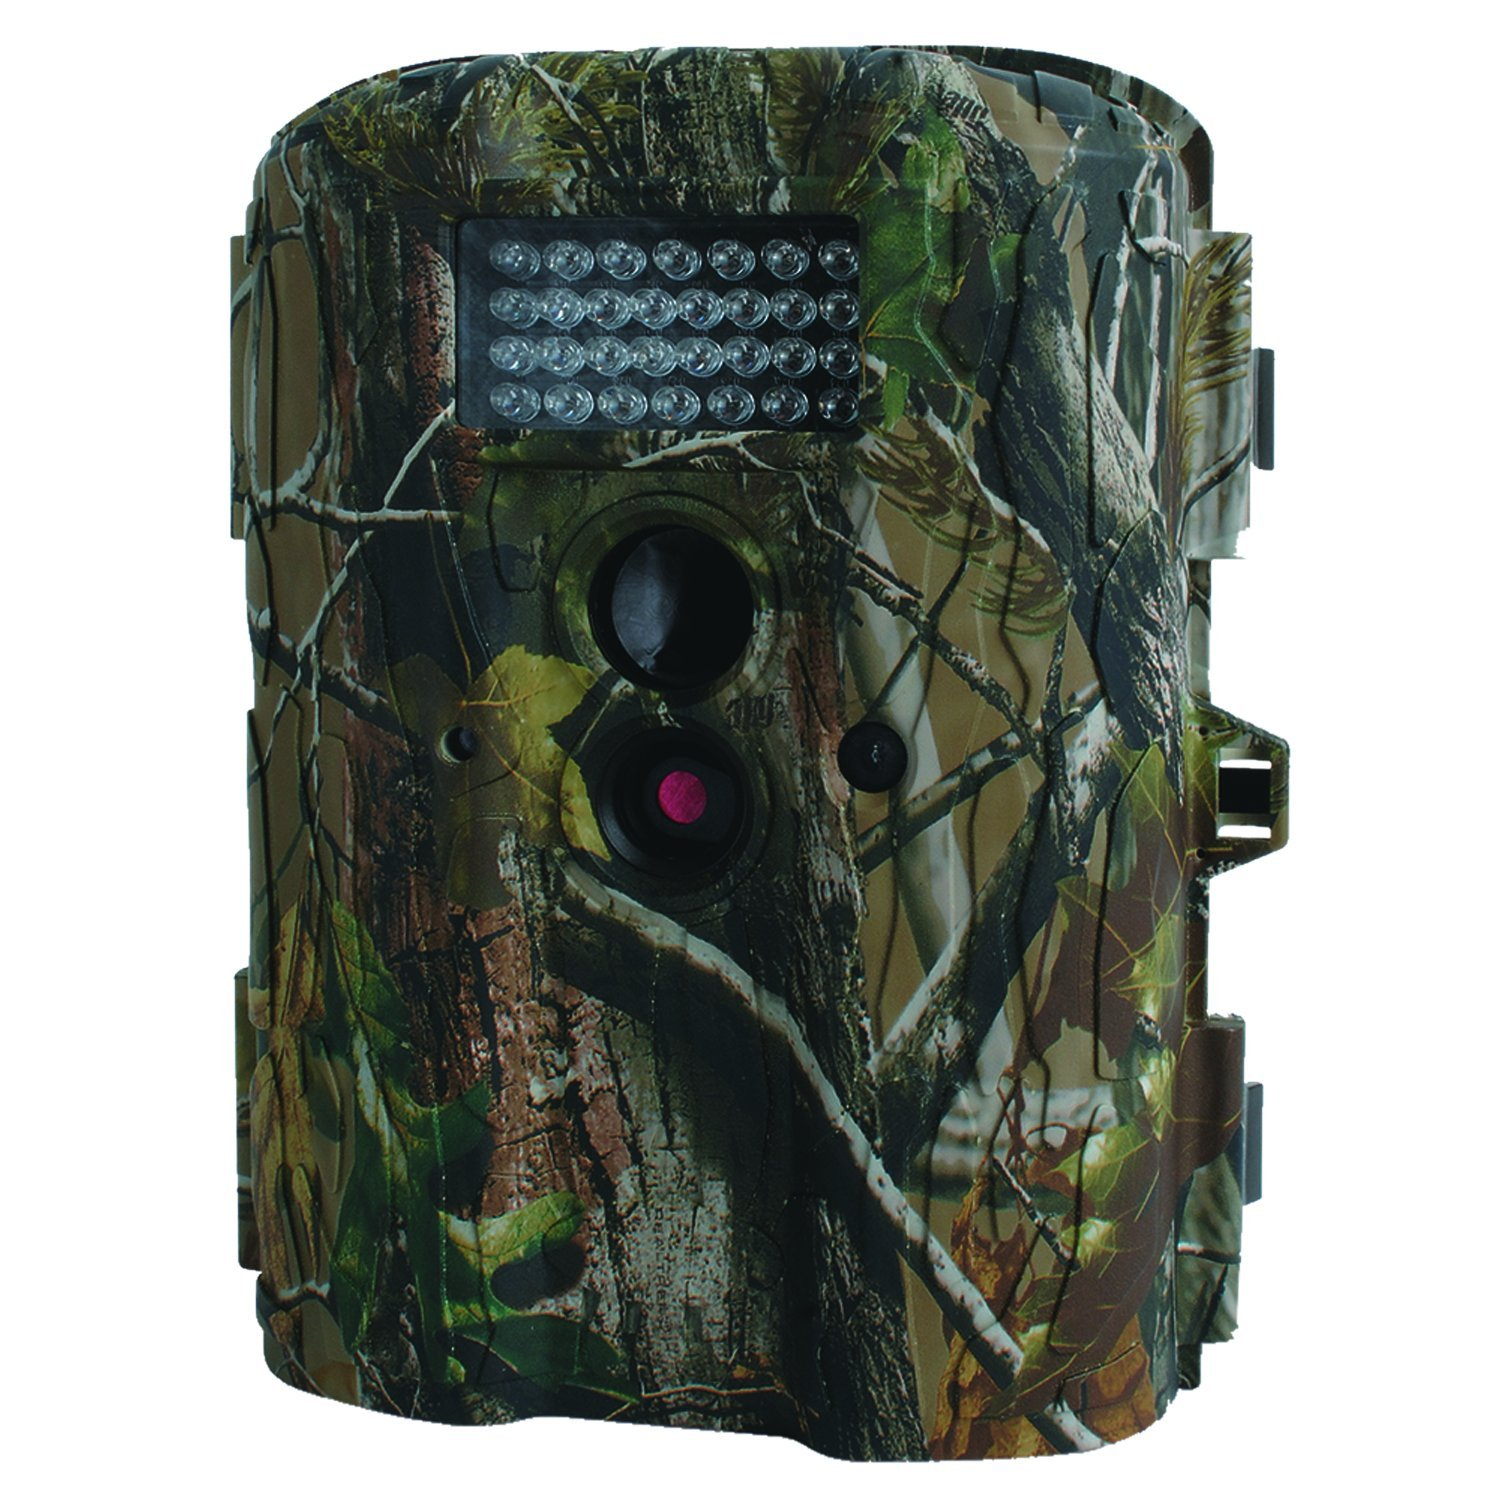 MOULTRIE INFRARED GAME CAMERA CAMO